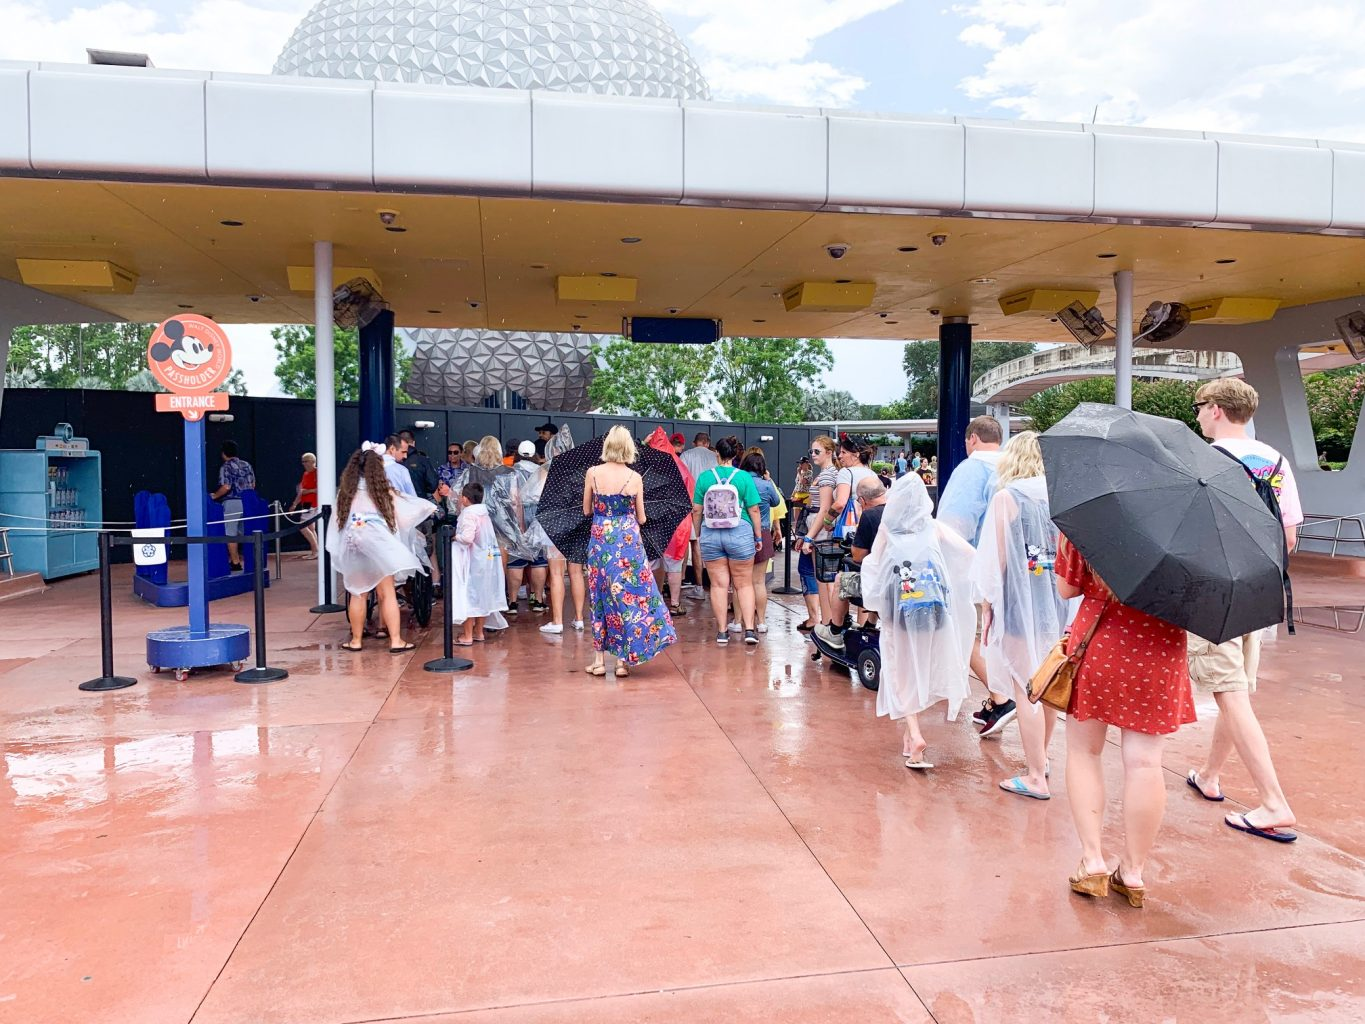 Disney on a Budget People in Rain in Ponchos